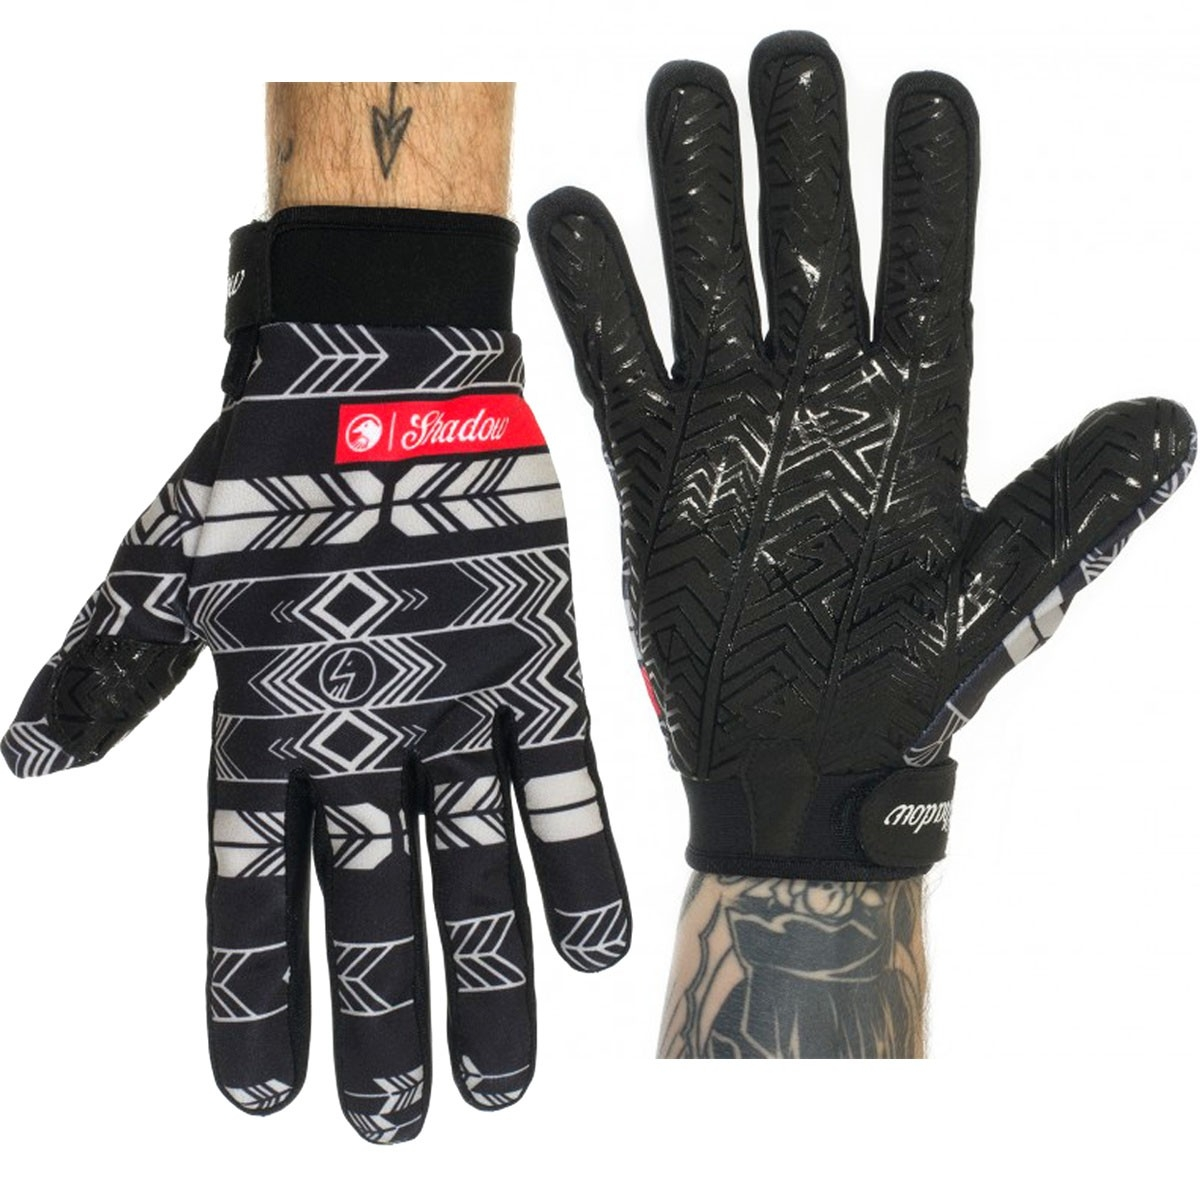 Gants longs TSC Conspire Noir Feather - XS